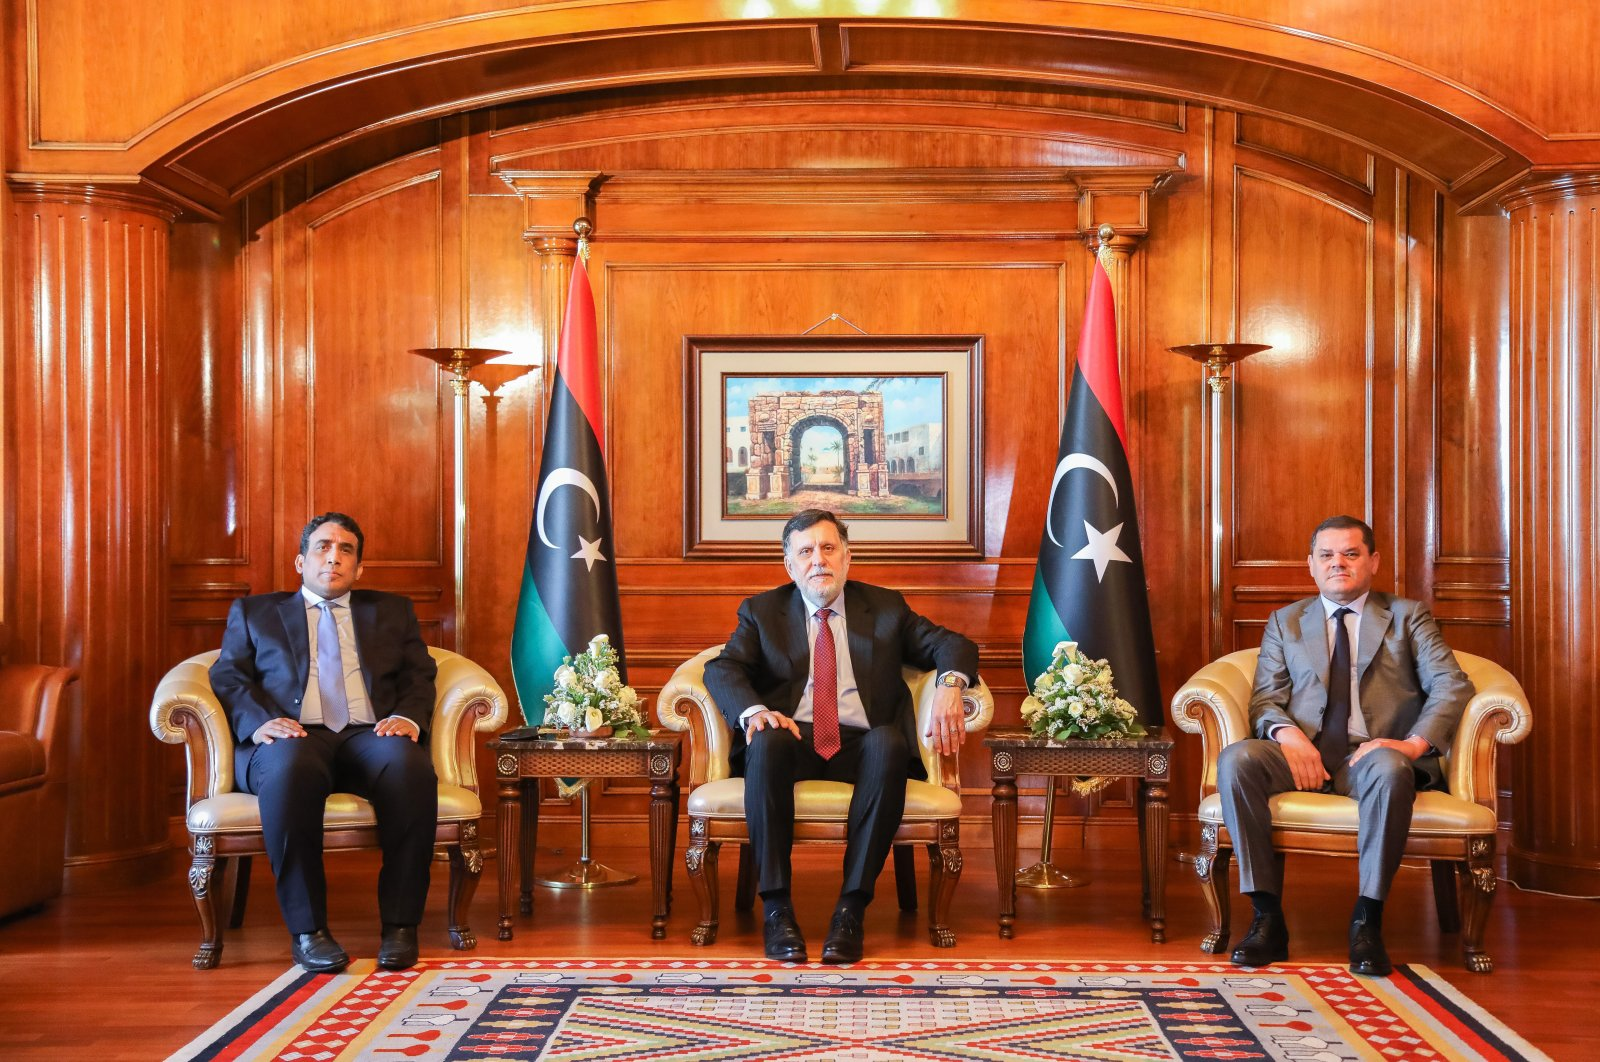 Libya's Prime Minister Abdul Hamid Dbeibeh (R), Libya's internationally recognized former Prime Minister Fayez Sarraj (C), and Mohammed al-Menfi (L), Head of the Presidency Council, pose for a photo ahead of the handover ceremony in Tripoli, Libya March 16, 2021. (AA)